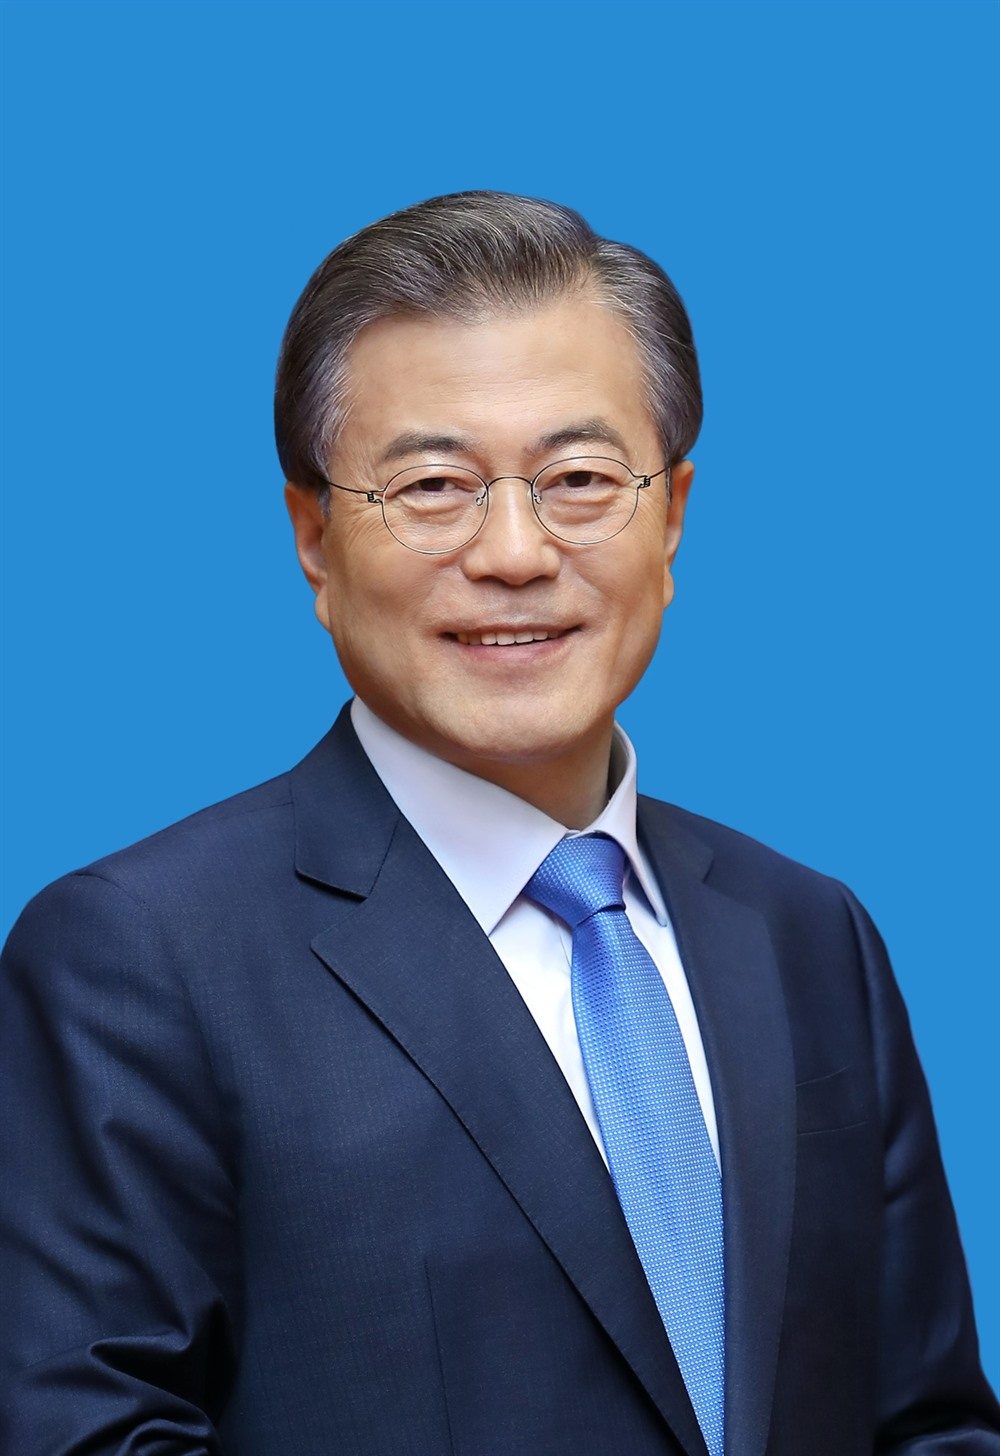 RoK and ASEAN feel natural attachment